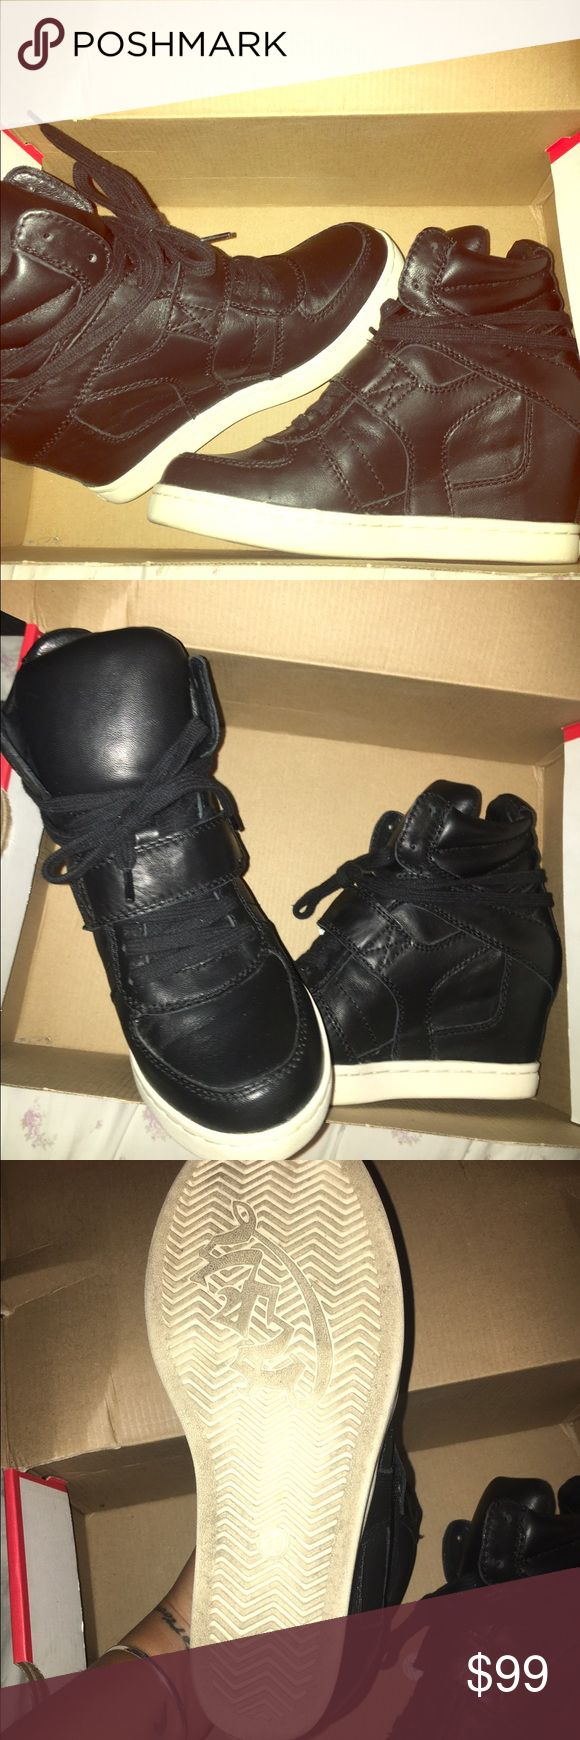 Ash sneaker wedges Black leather, very lightly worn sneaker wedges with laces and a velcro strap. Fashionable, urban in very good condition. No bad scratches or marks. Worn a few times. Size 38. Brand is Ash. Ash Shoes Sneakers